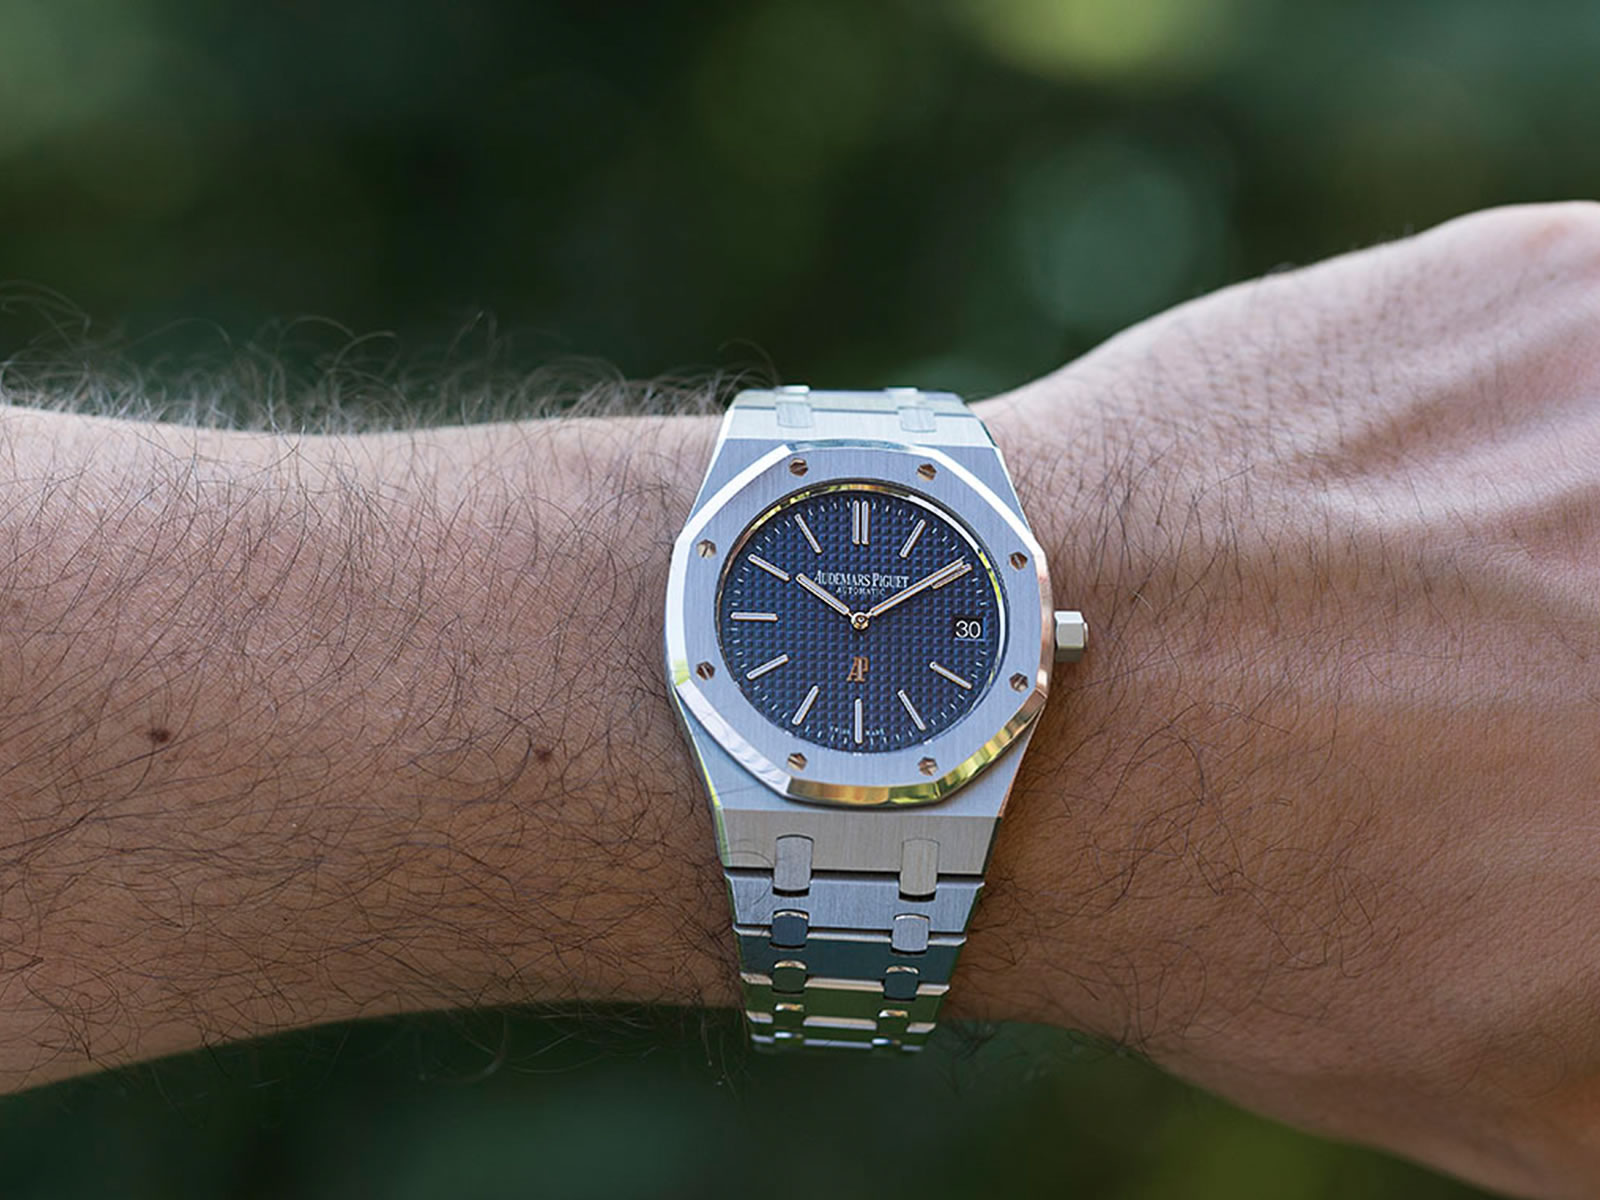 15202-audemars-piguet-royal-oak-jumbo.jpg